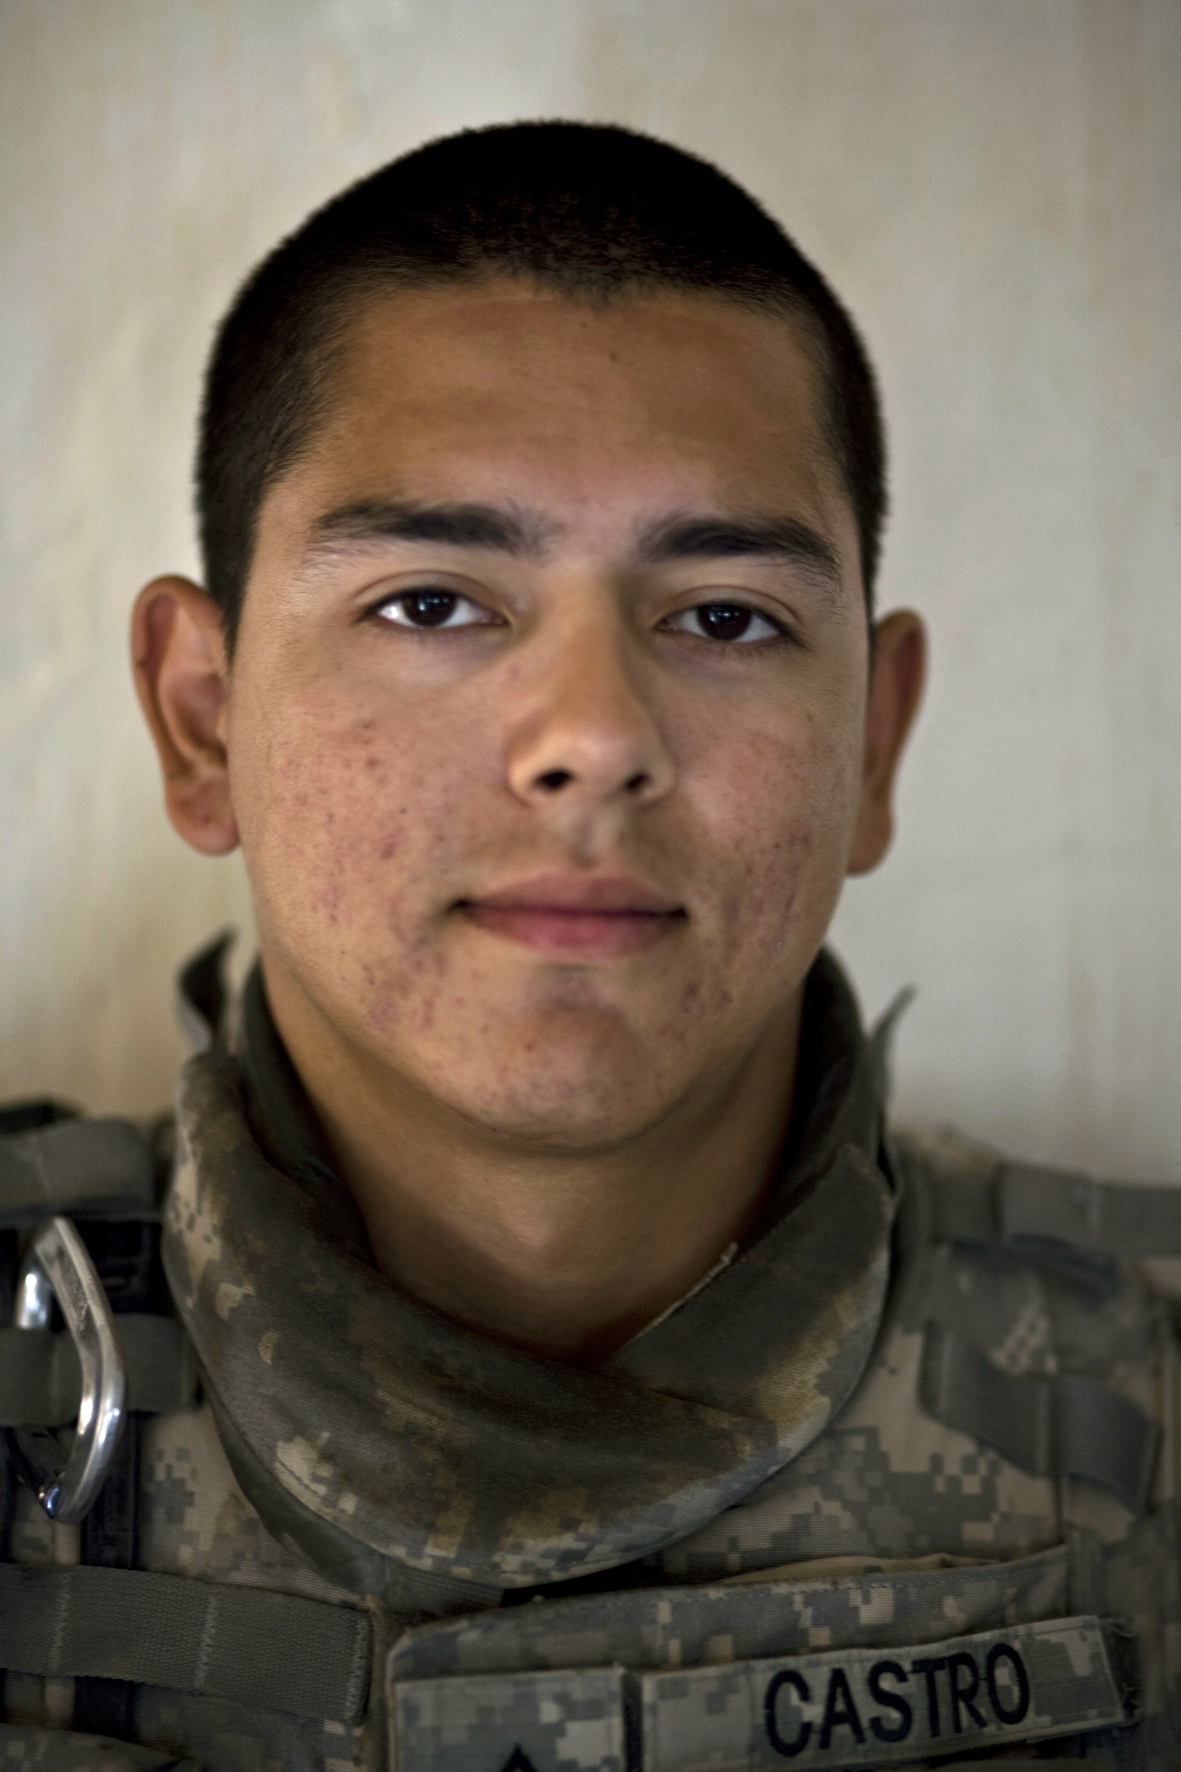 Private First Class Joseph Castro